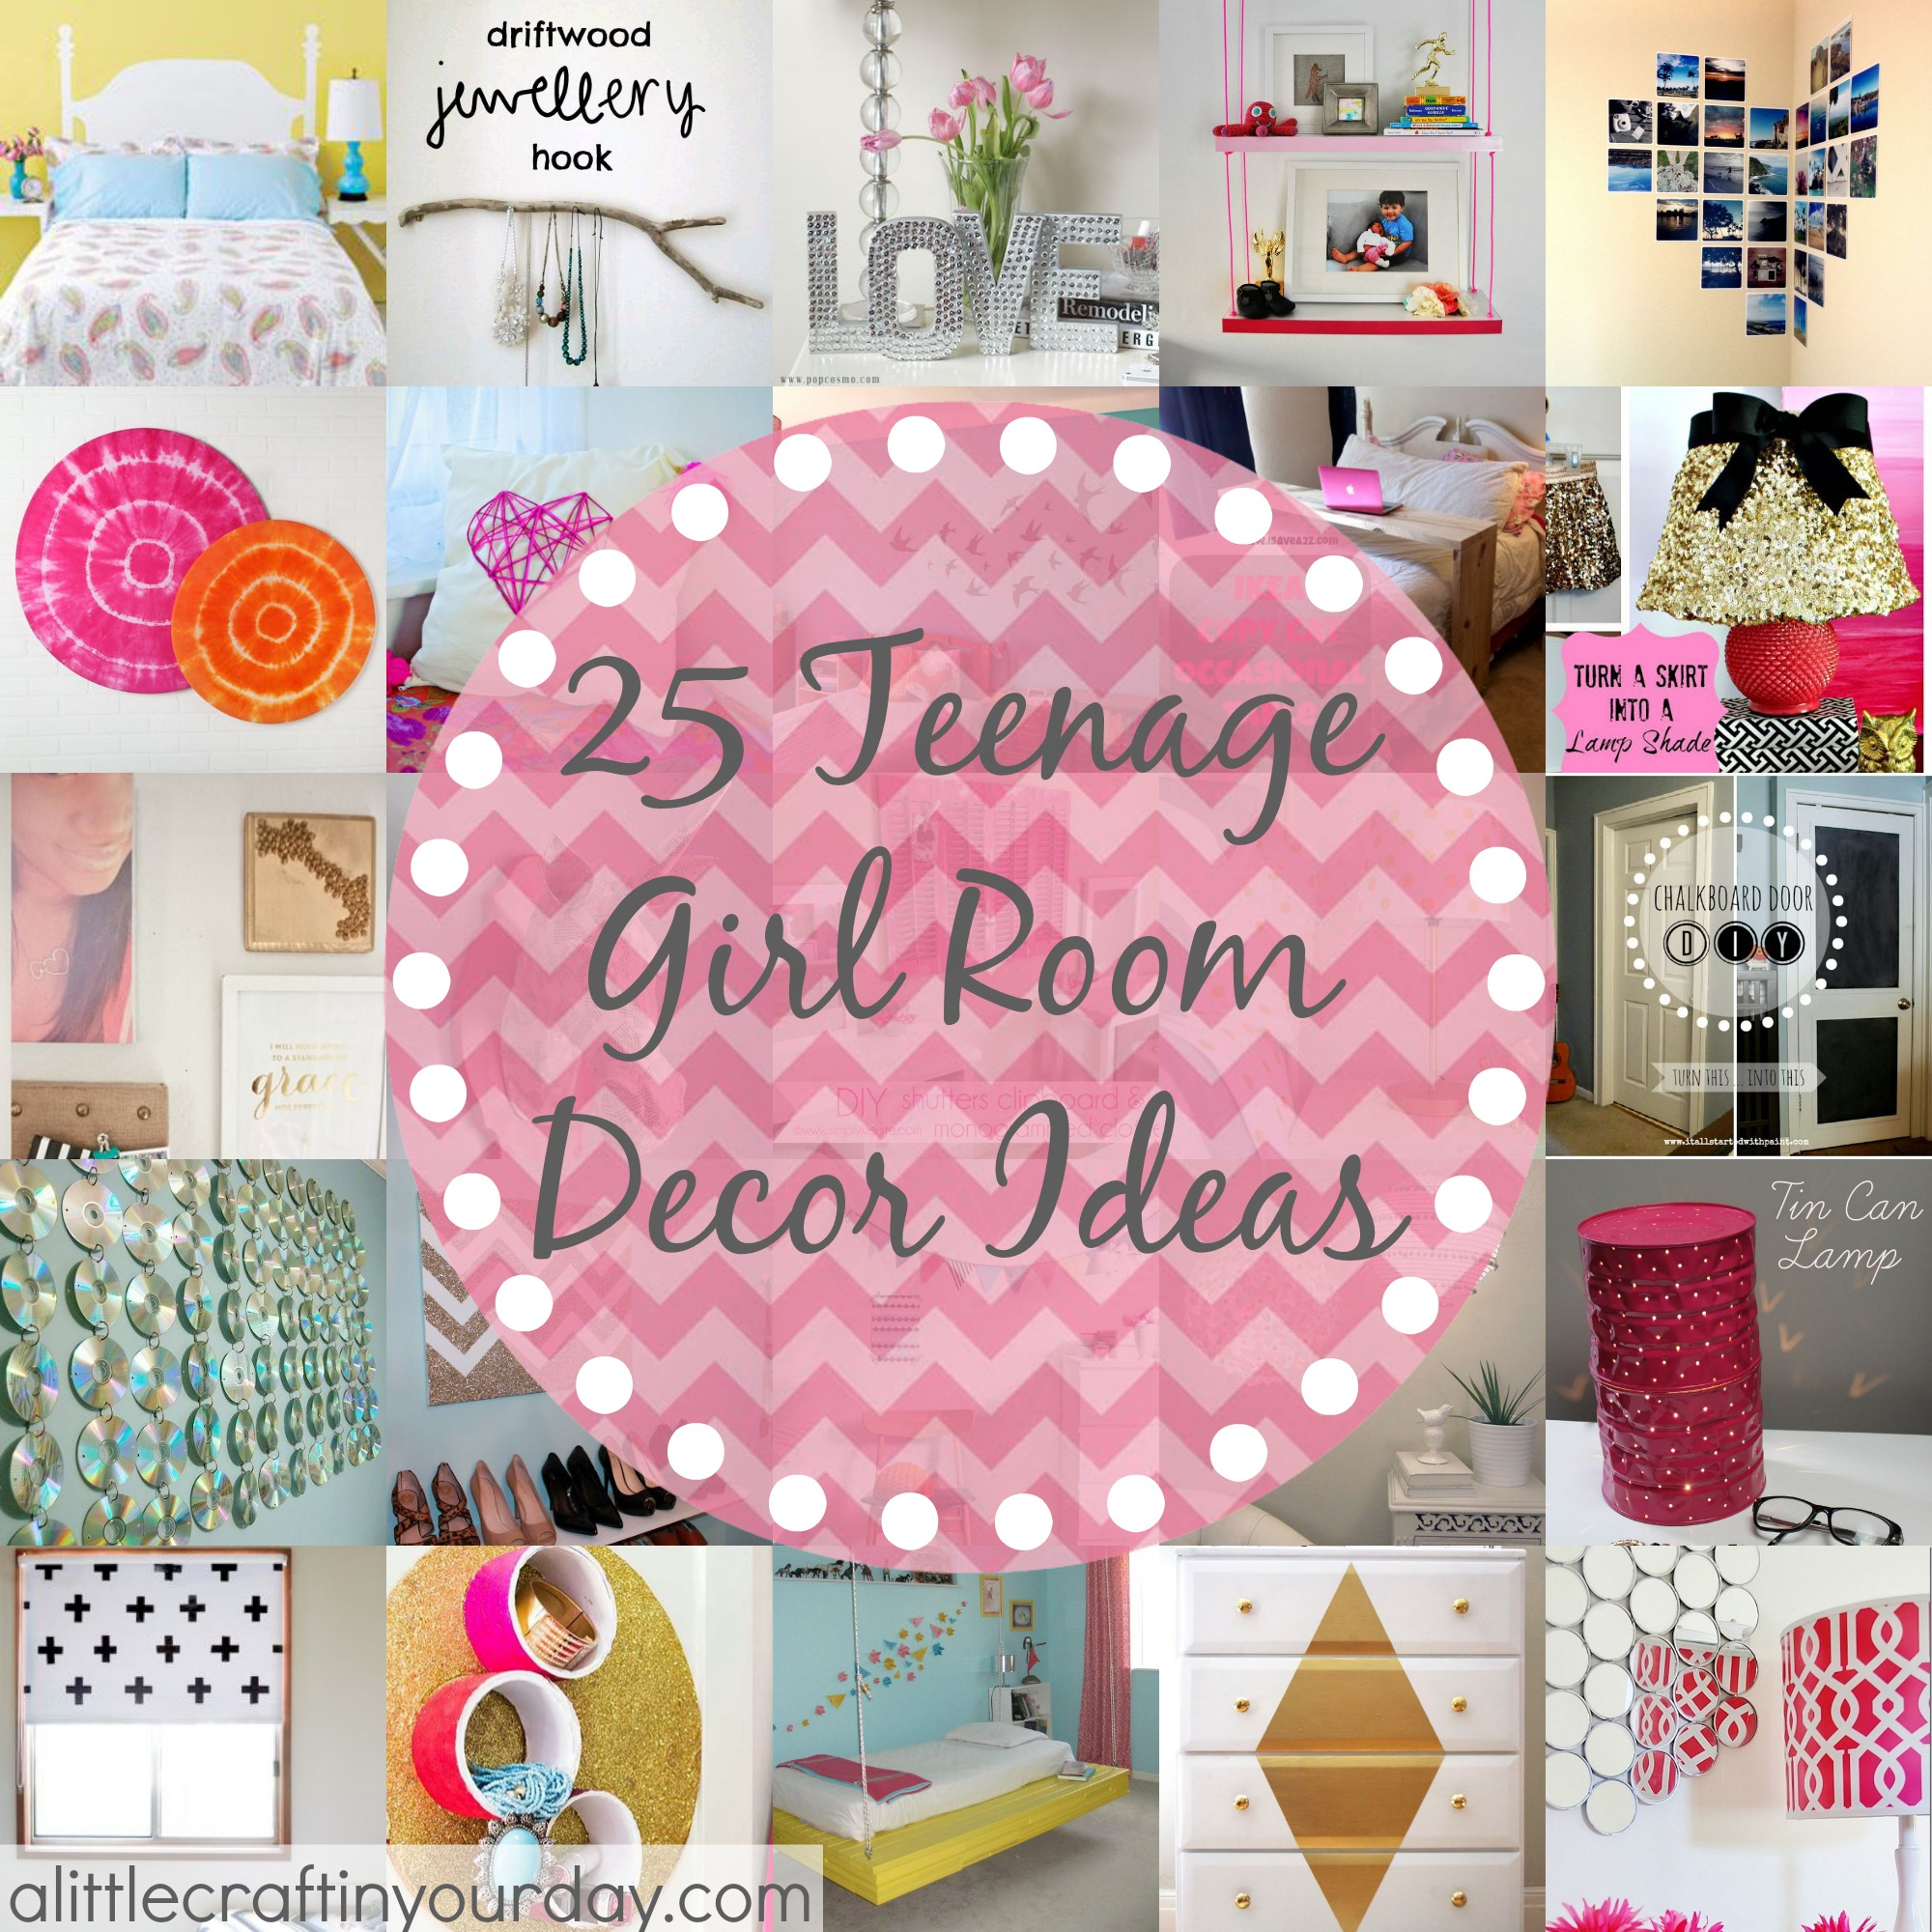 Interior Crafty Bedroom Ideas 25 more teenage girl room decor ideas a little craft in your day 430 ideas